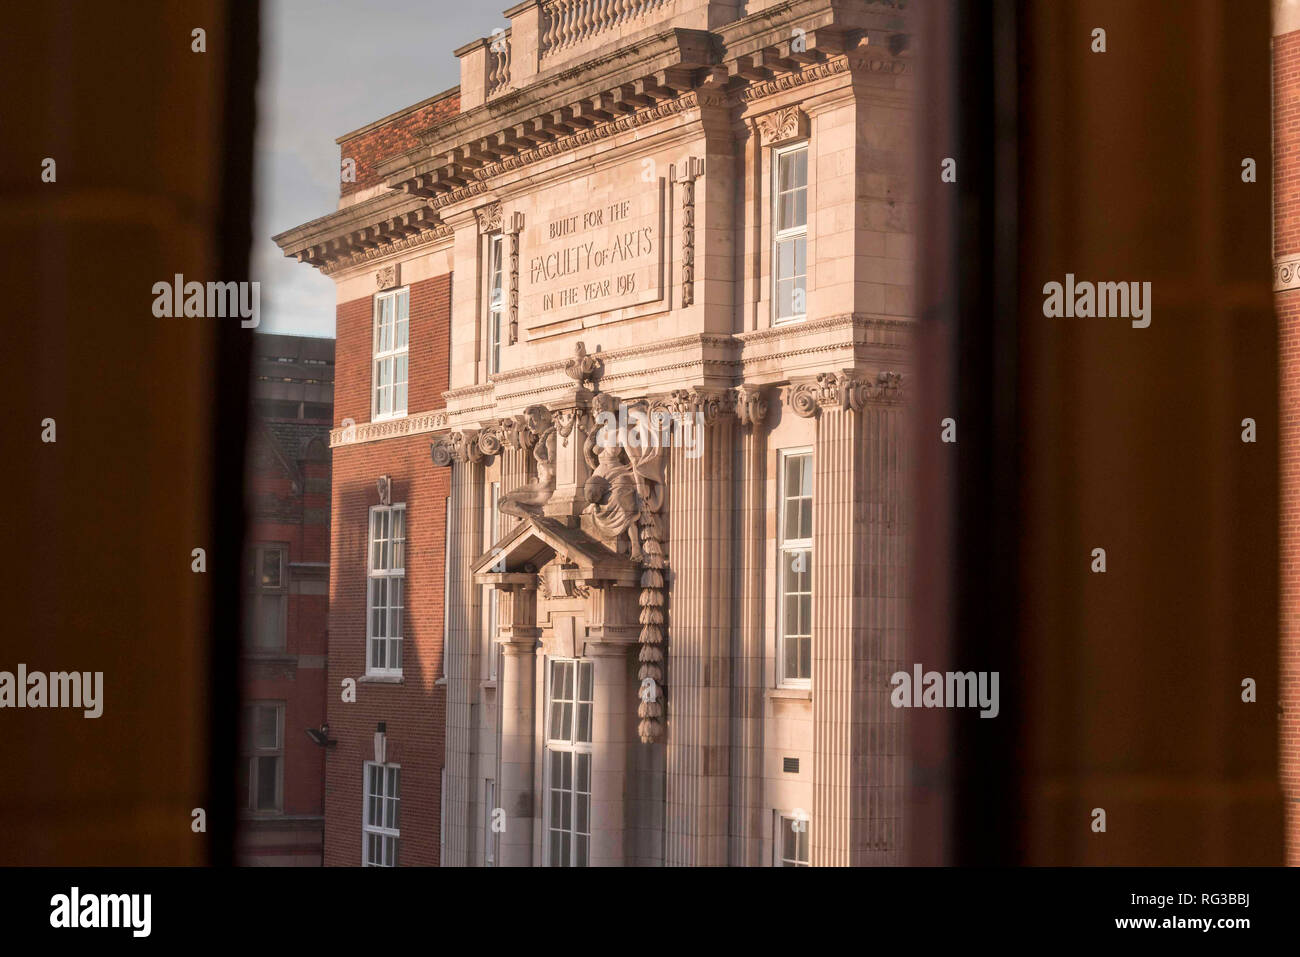 University of Liverpool Faculty of Art Building in the year 1913 - Stock Image